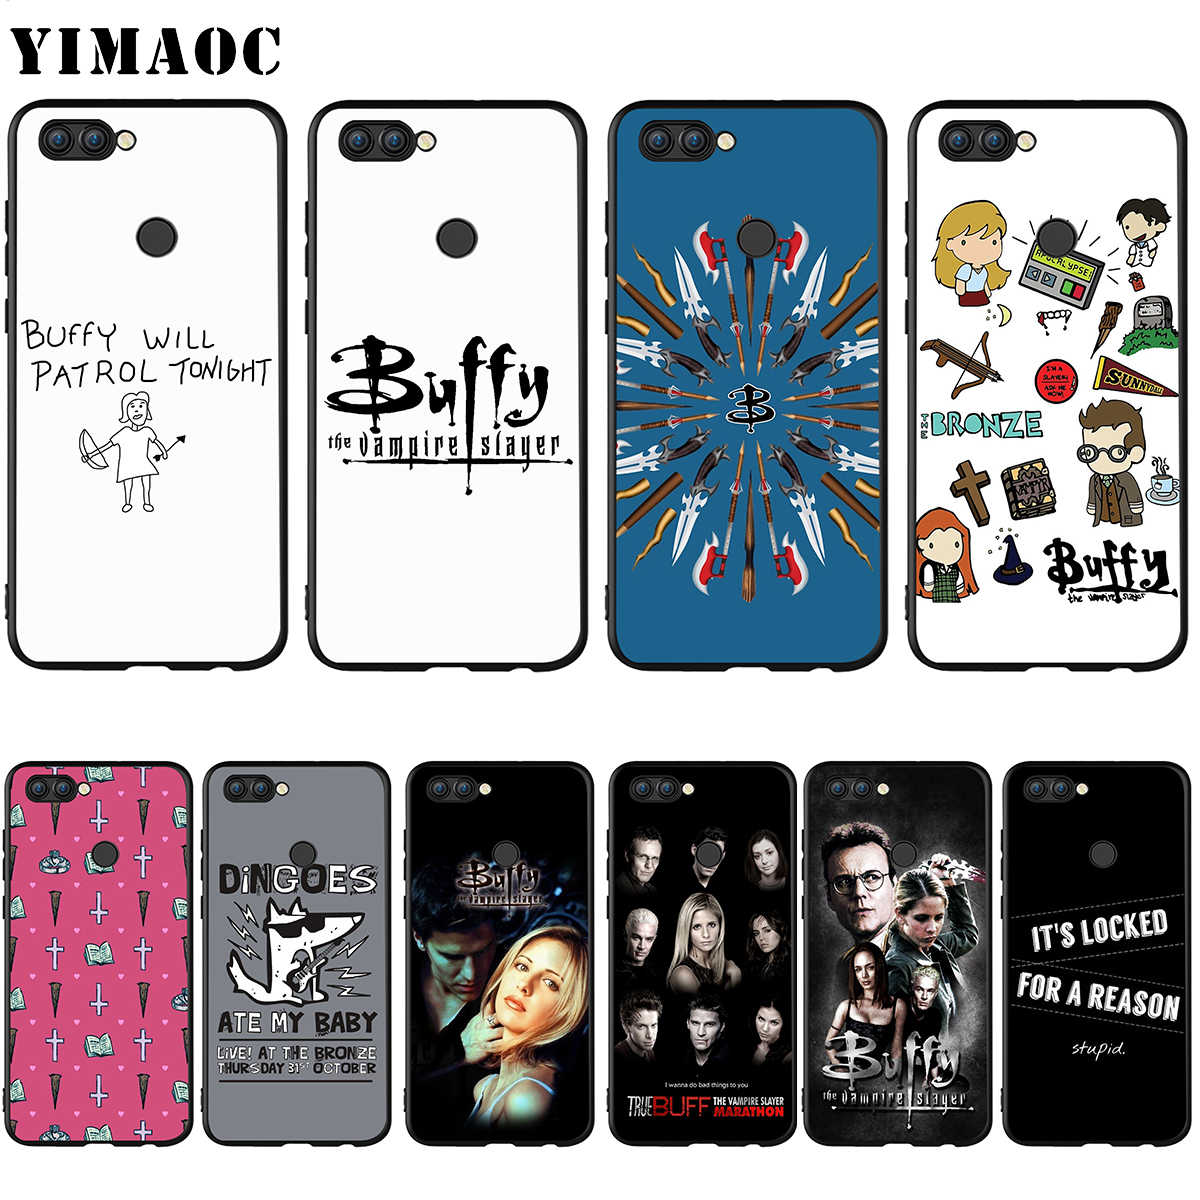 YIMAOC Buffy The Vampire Slayer Custodia In Silicone per Huawei Honor 6a 7a 7c 7x8 9 10 Lite Pro y6 Prime 2018 2017